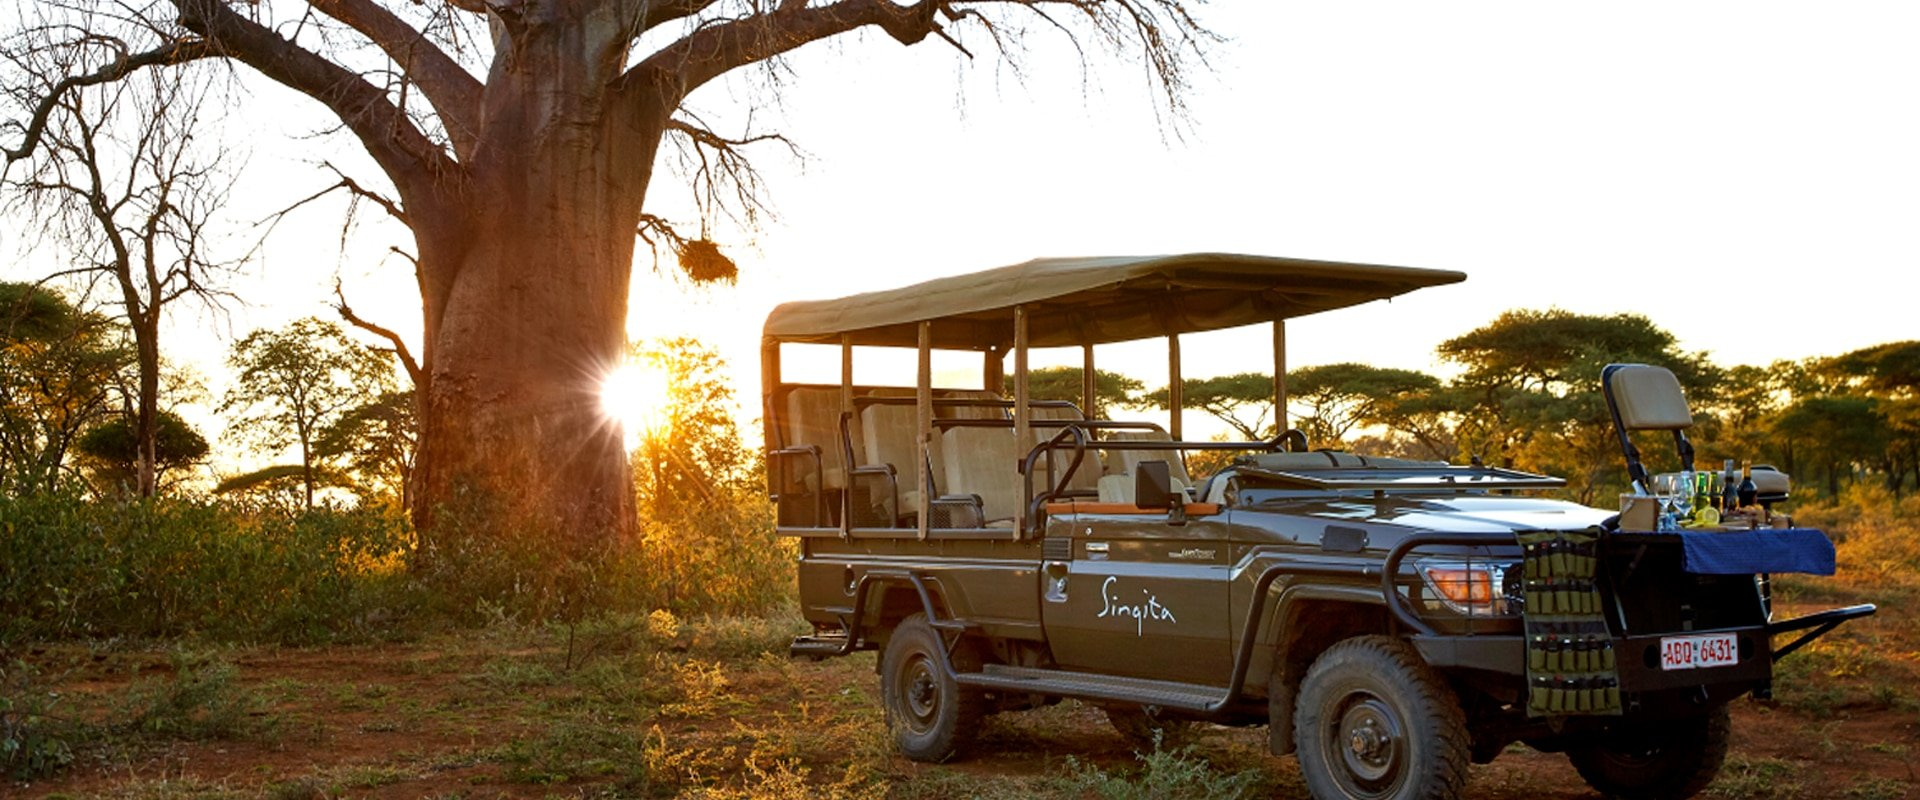 Get up close to Africa's wildlife on daily game drives with professional guides and trackers